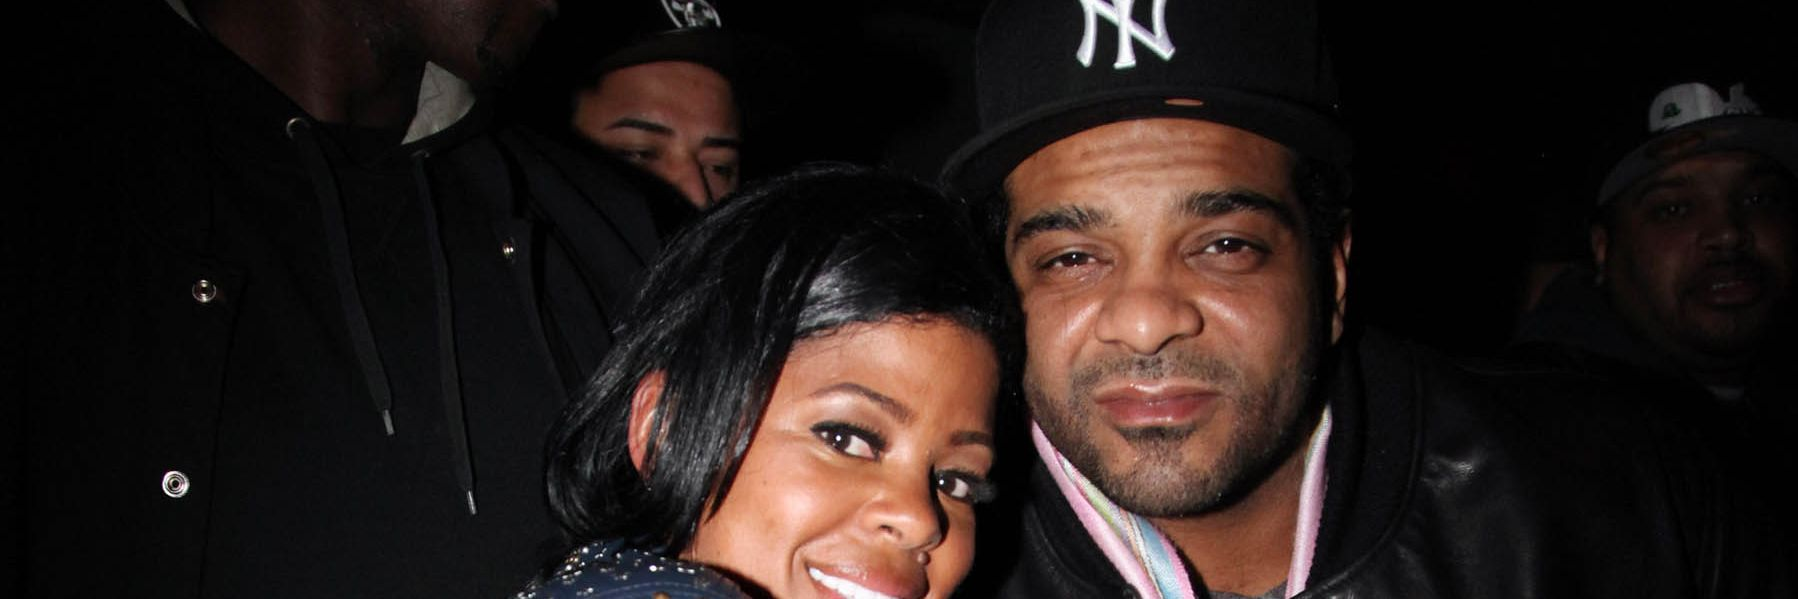 Who is jim jones currently dating